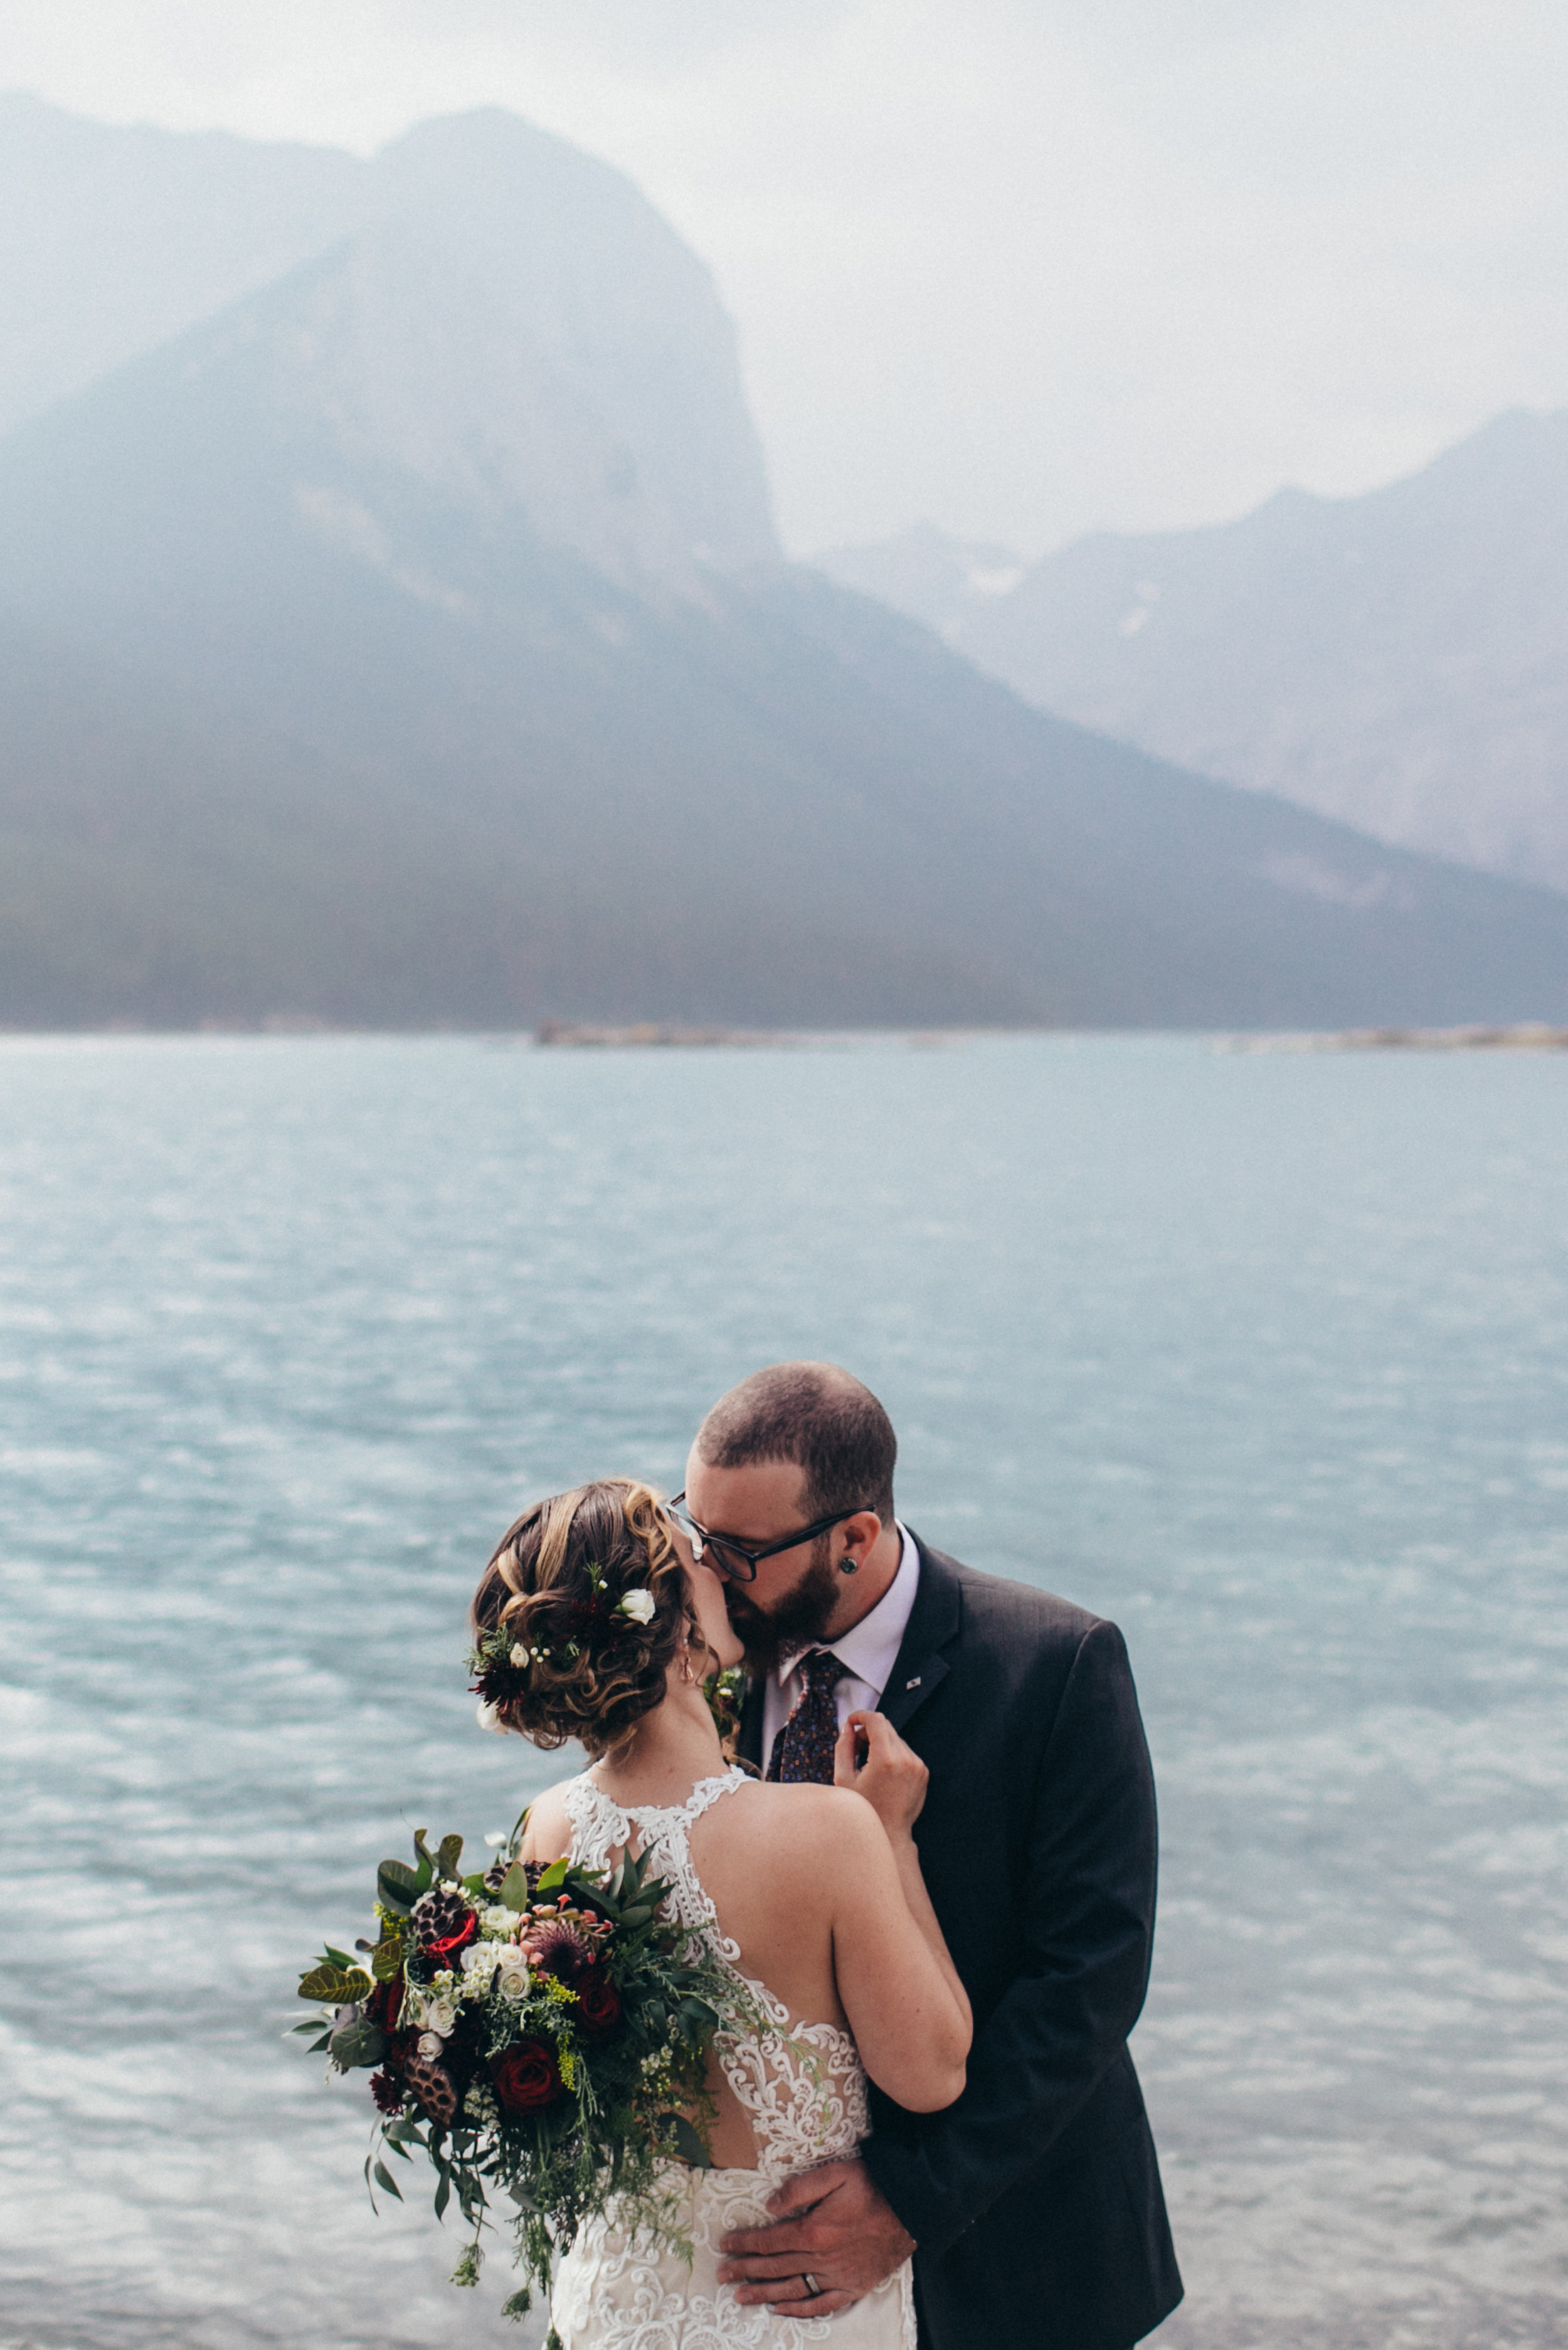 banff wedding flowers from experienced and affordable wedding florist based in calgary